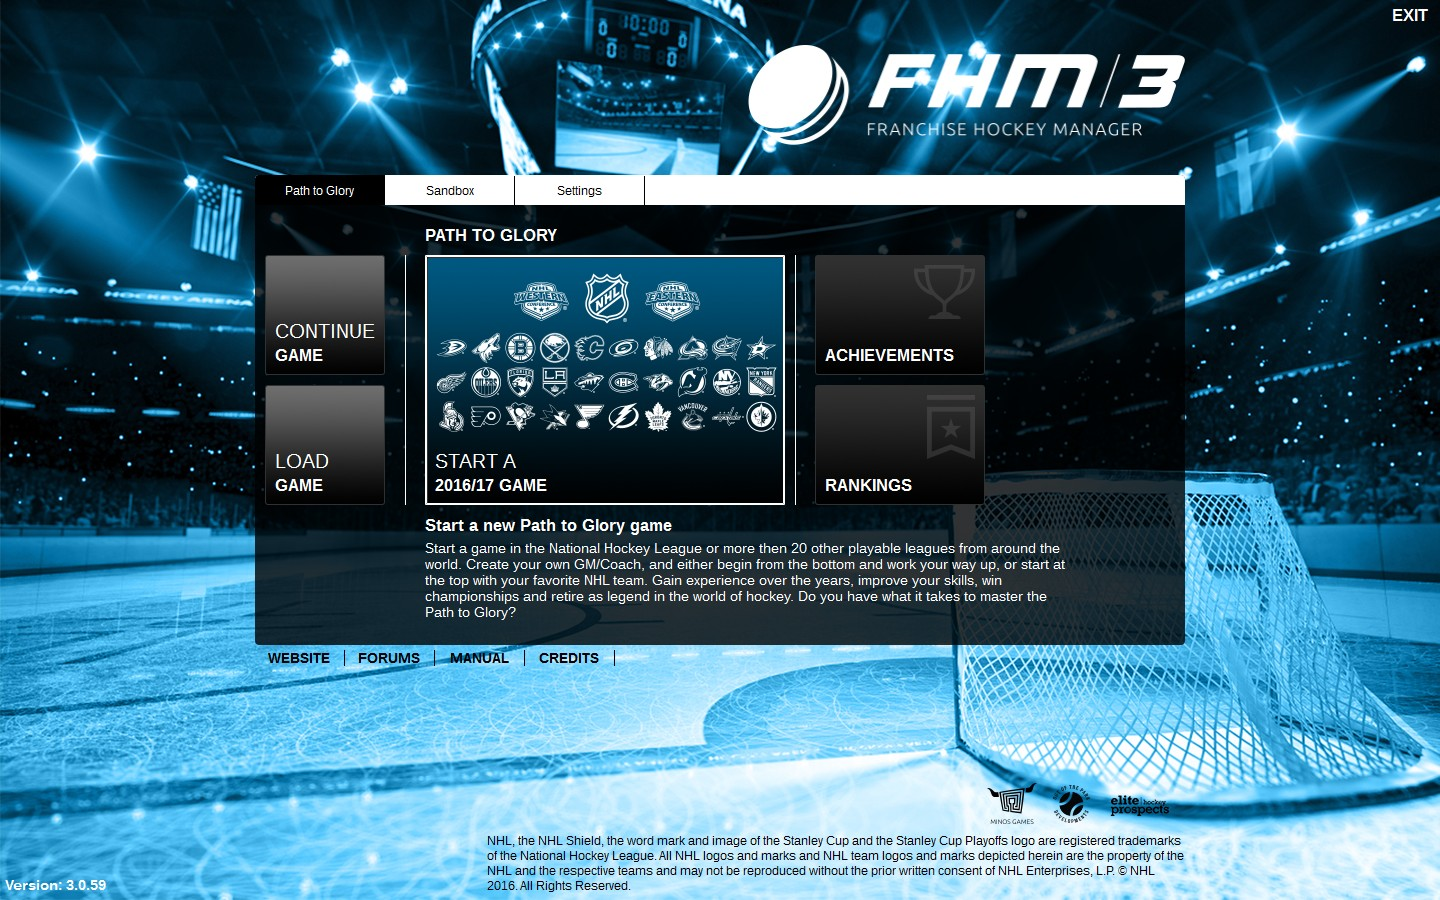 Franchise Hockey Manager 3 Screenshot 1